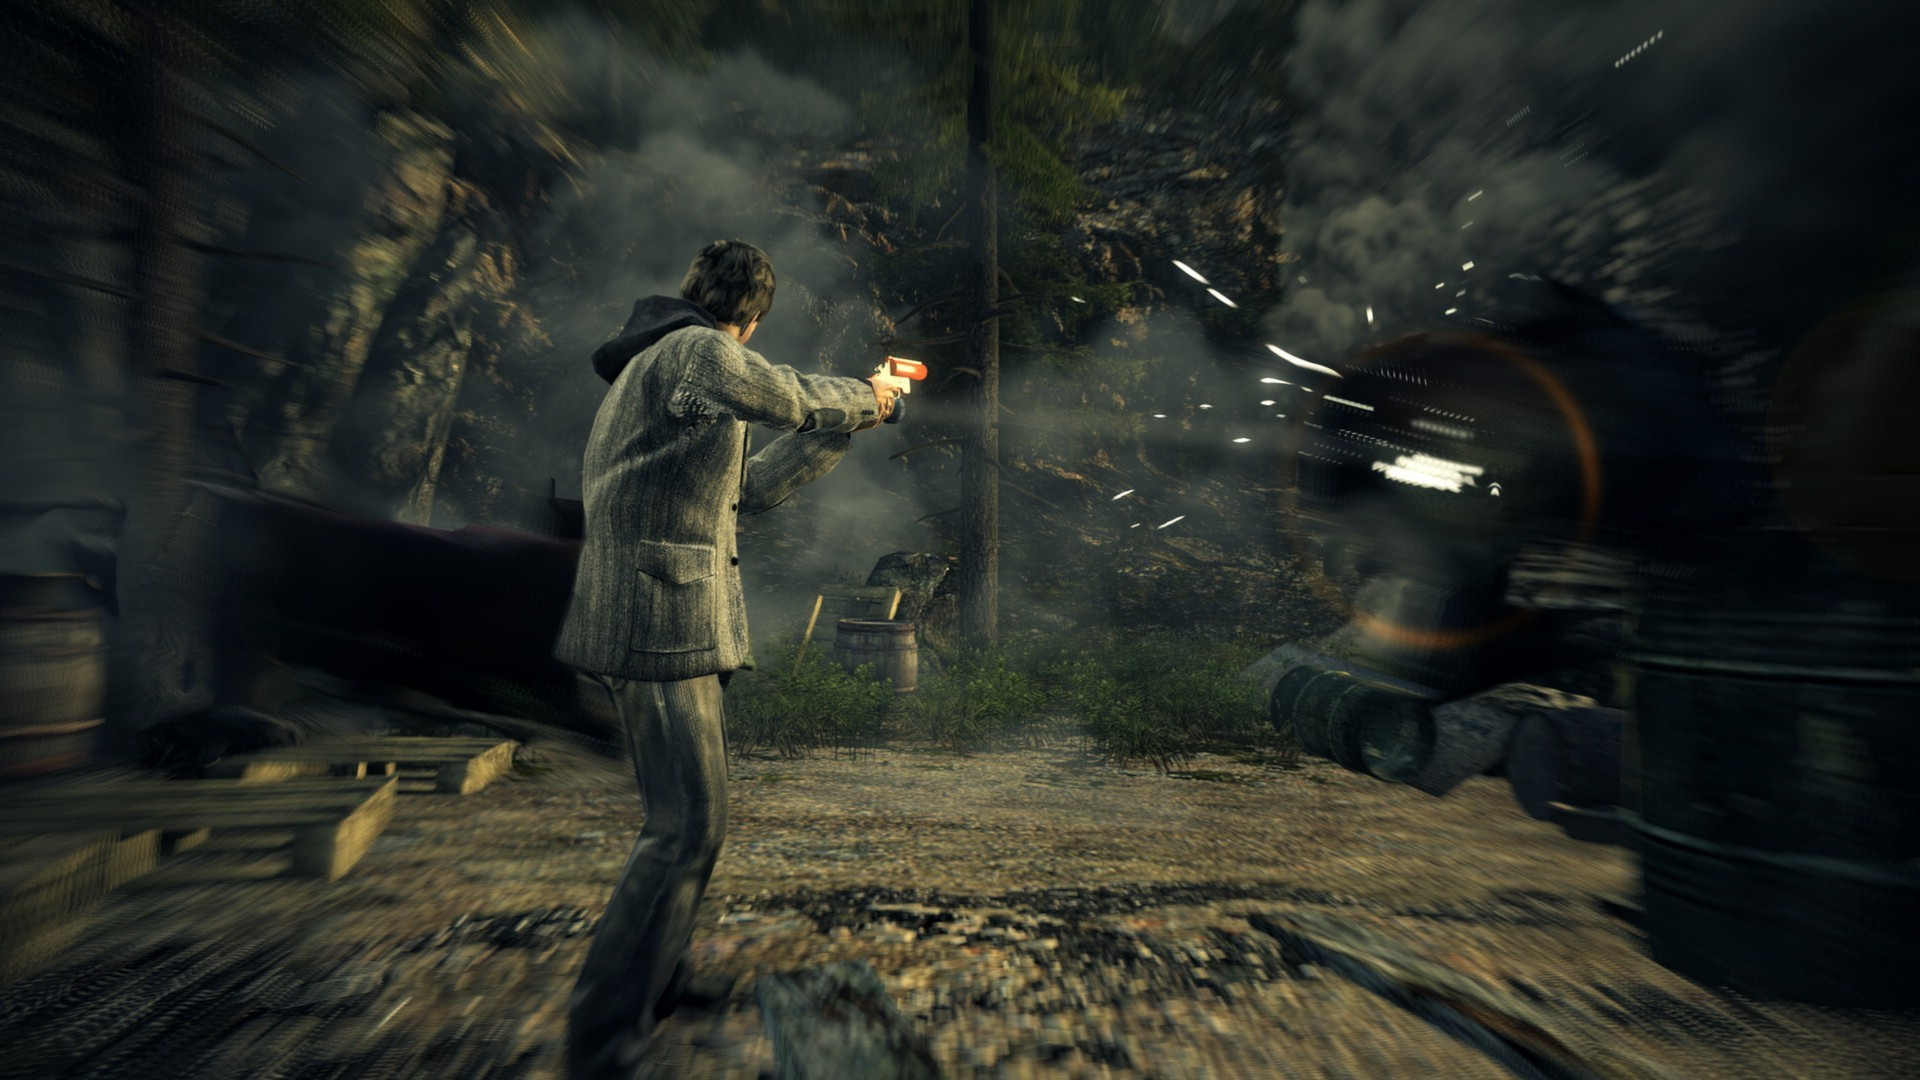 1920x1080 26 games – A wie Alan Wake